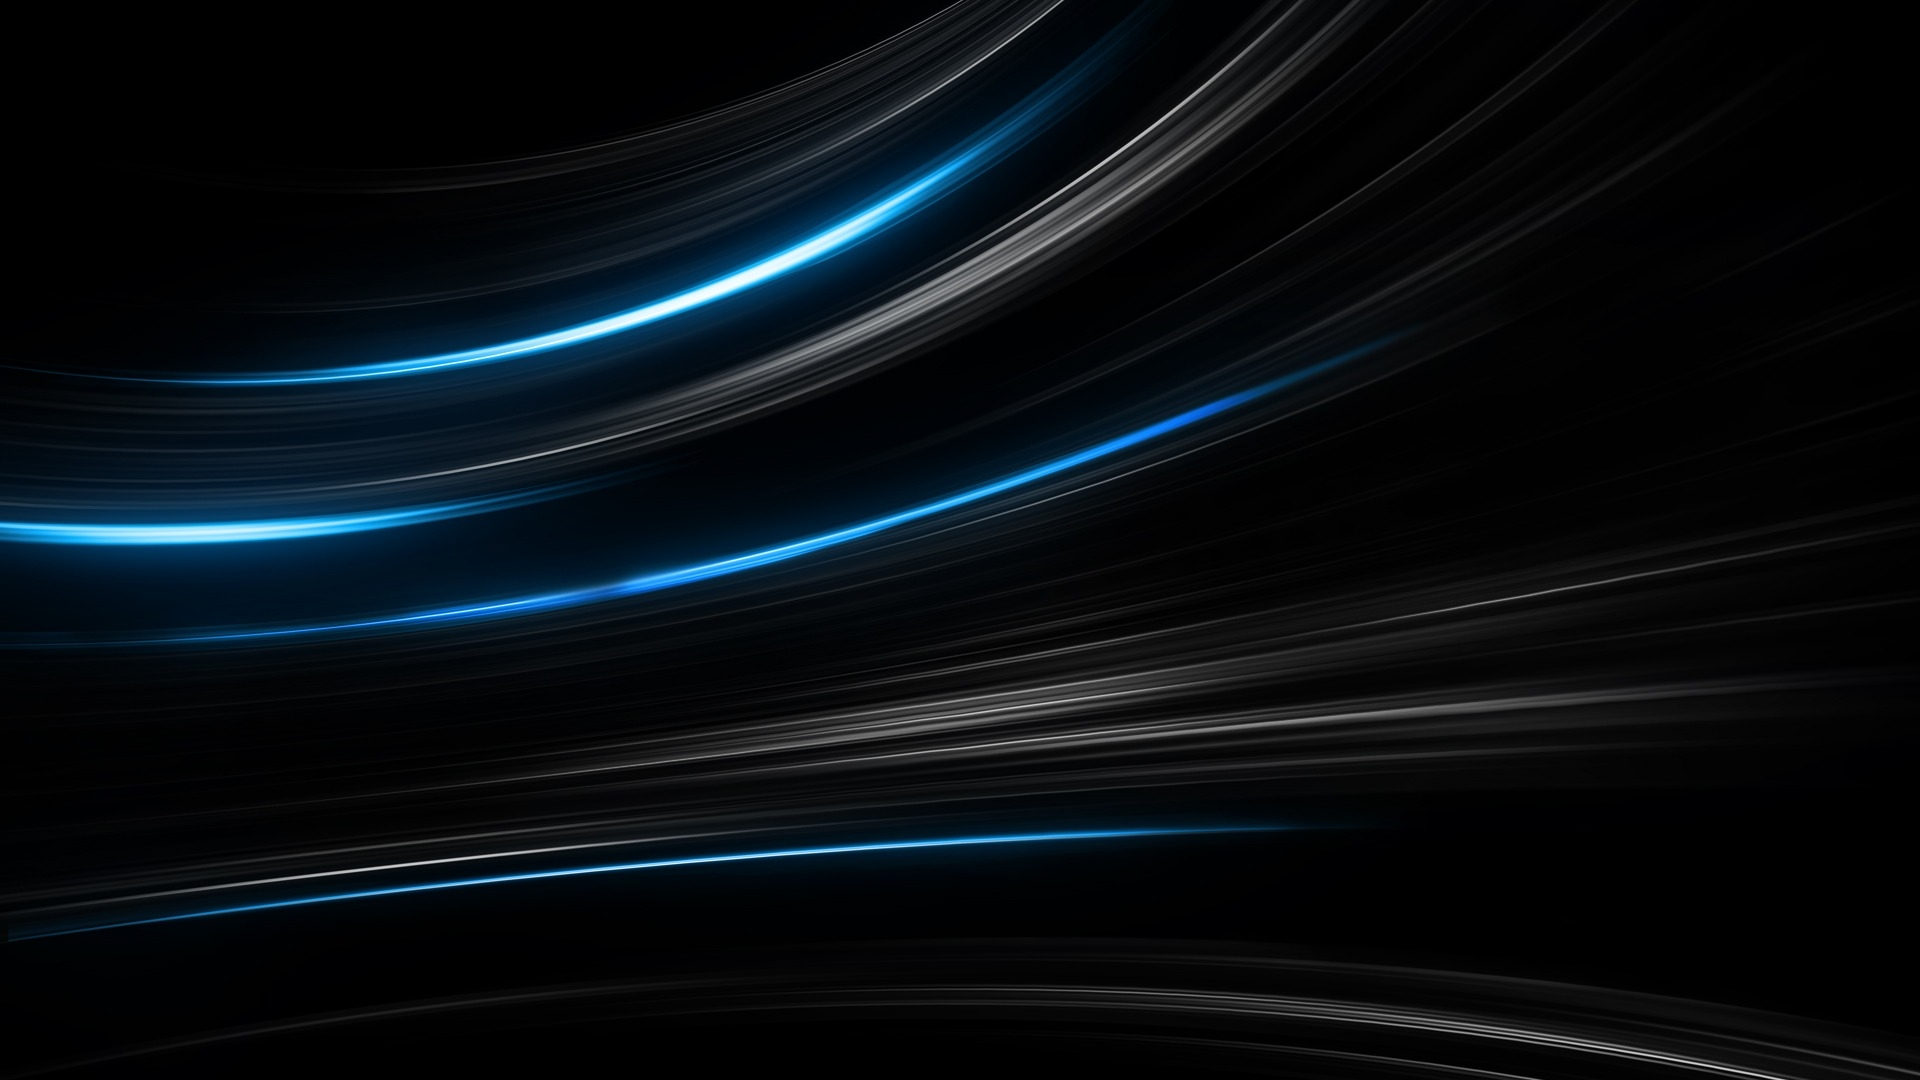 Full HD 1080p Black Wallpapers HD, Desktop Backgrounds 1920x1080